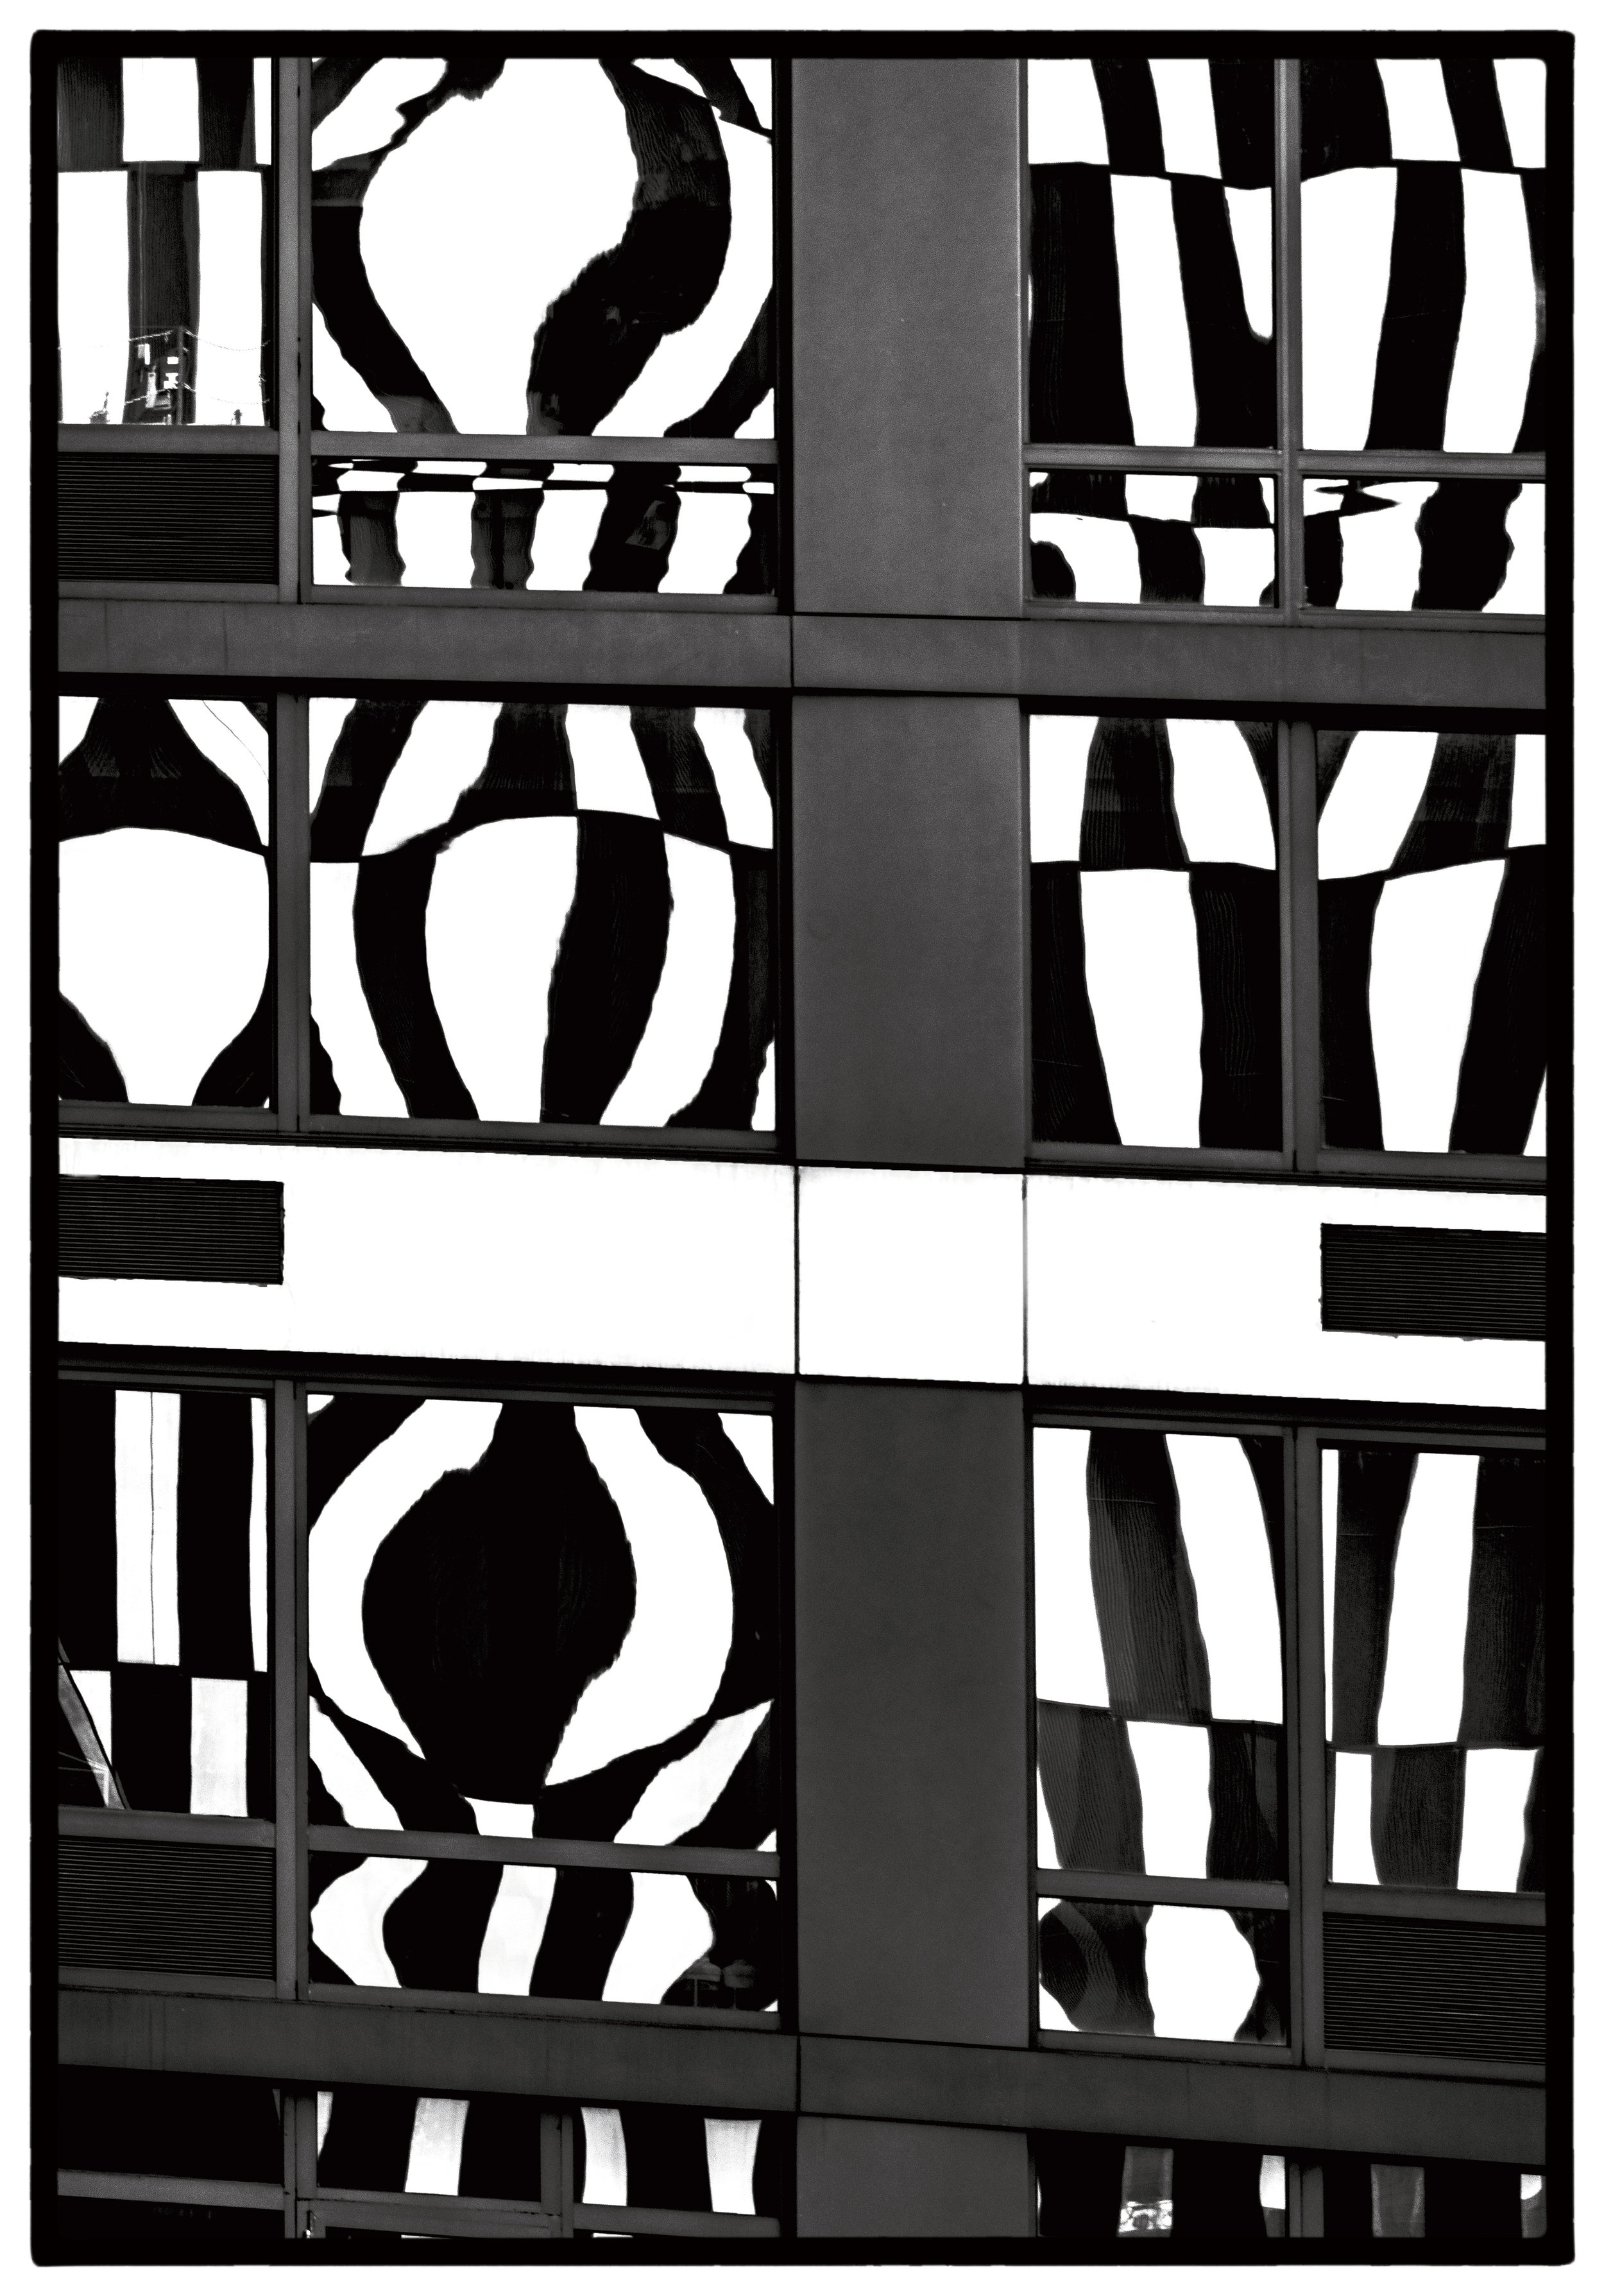 Black-and-white-patterns-reflections3643.jpg